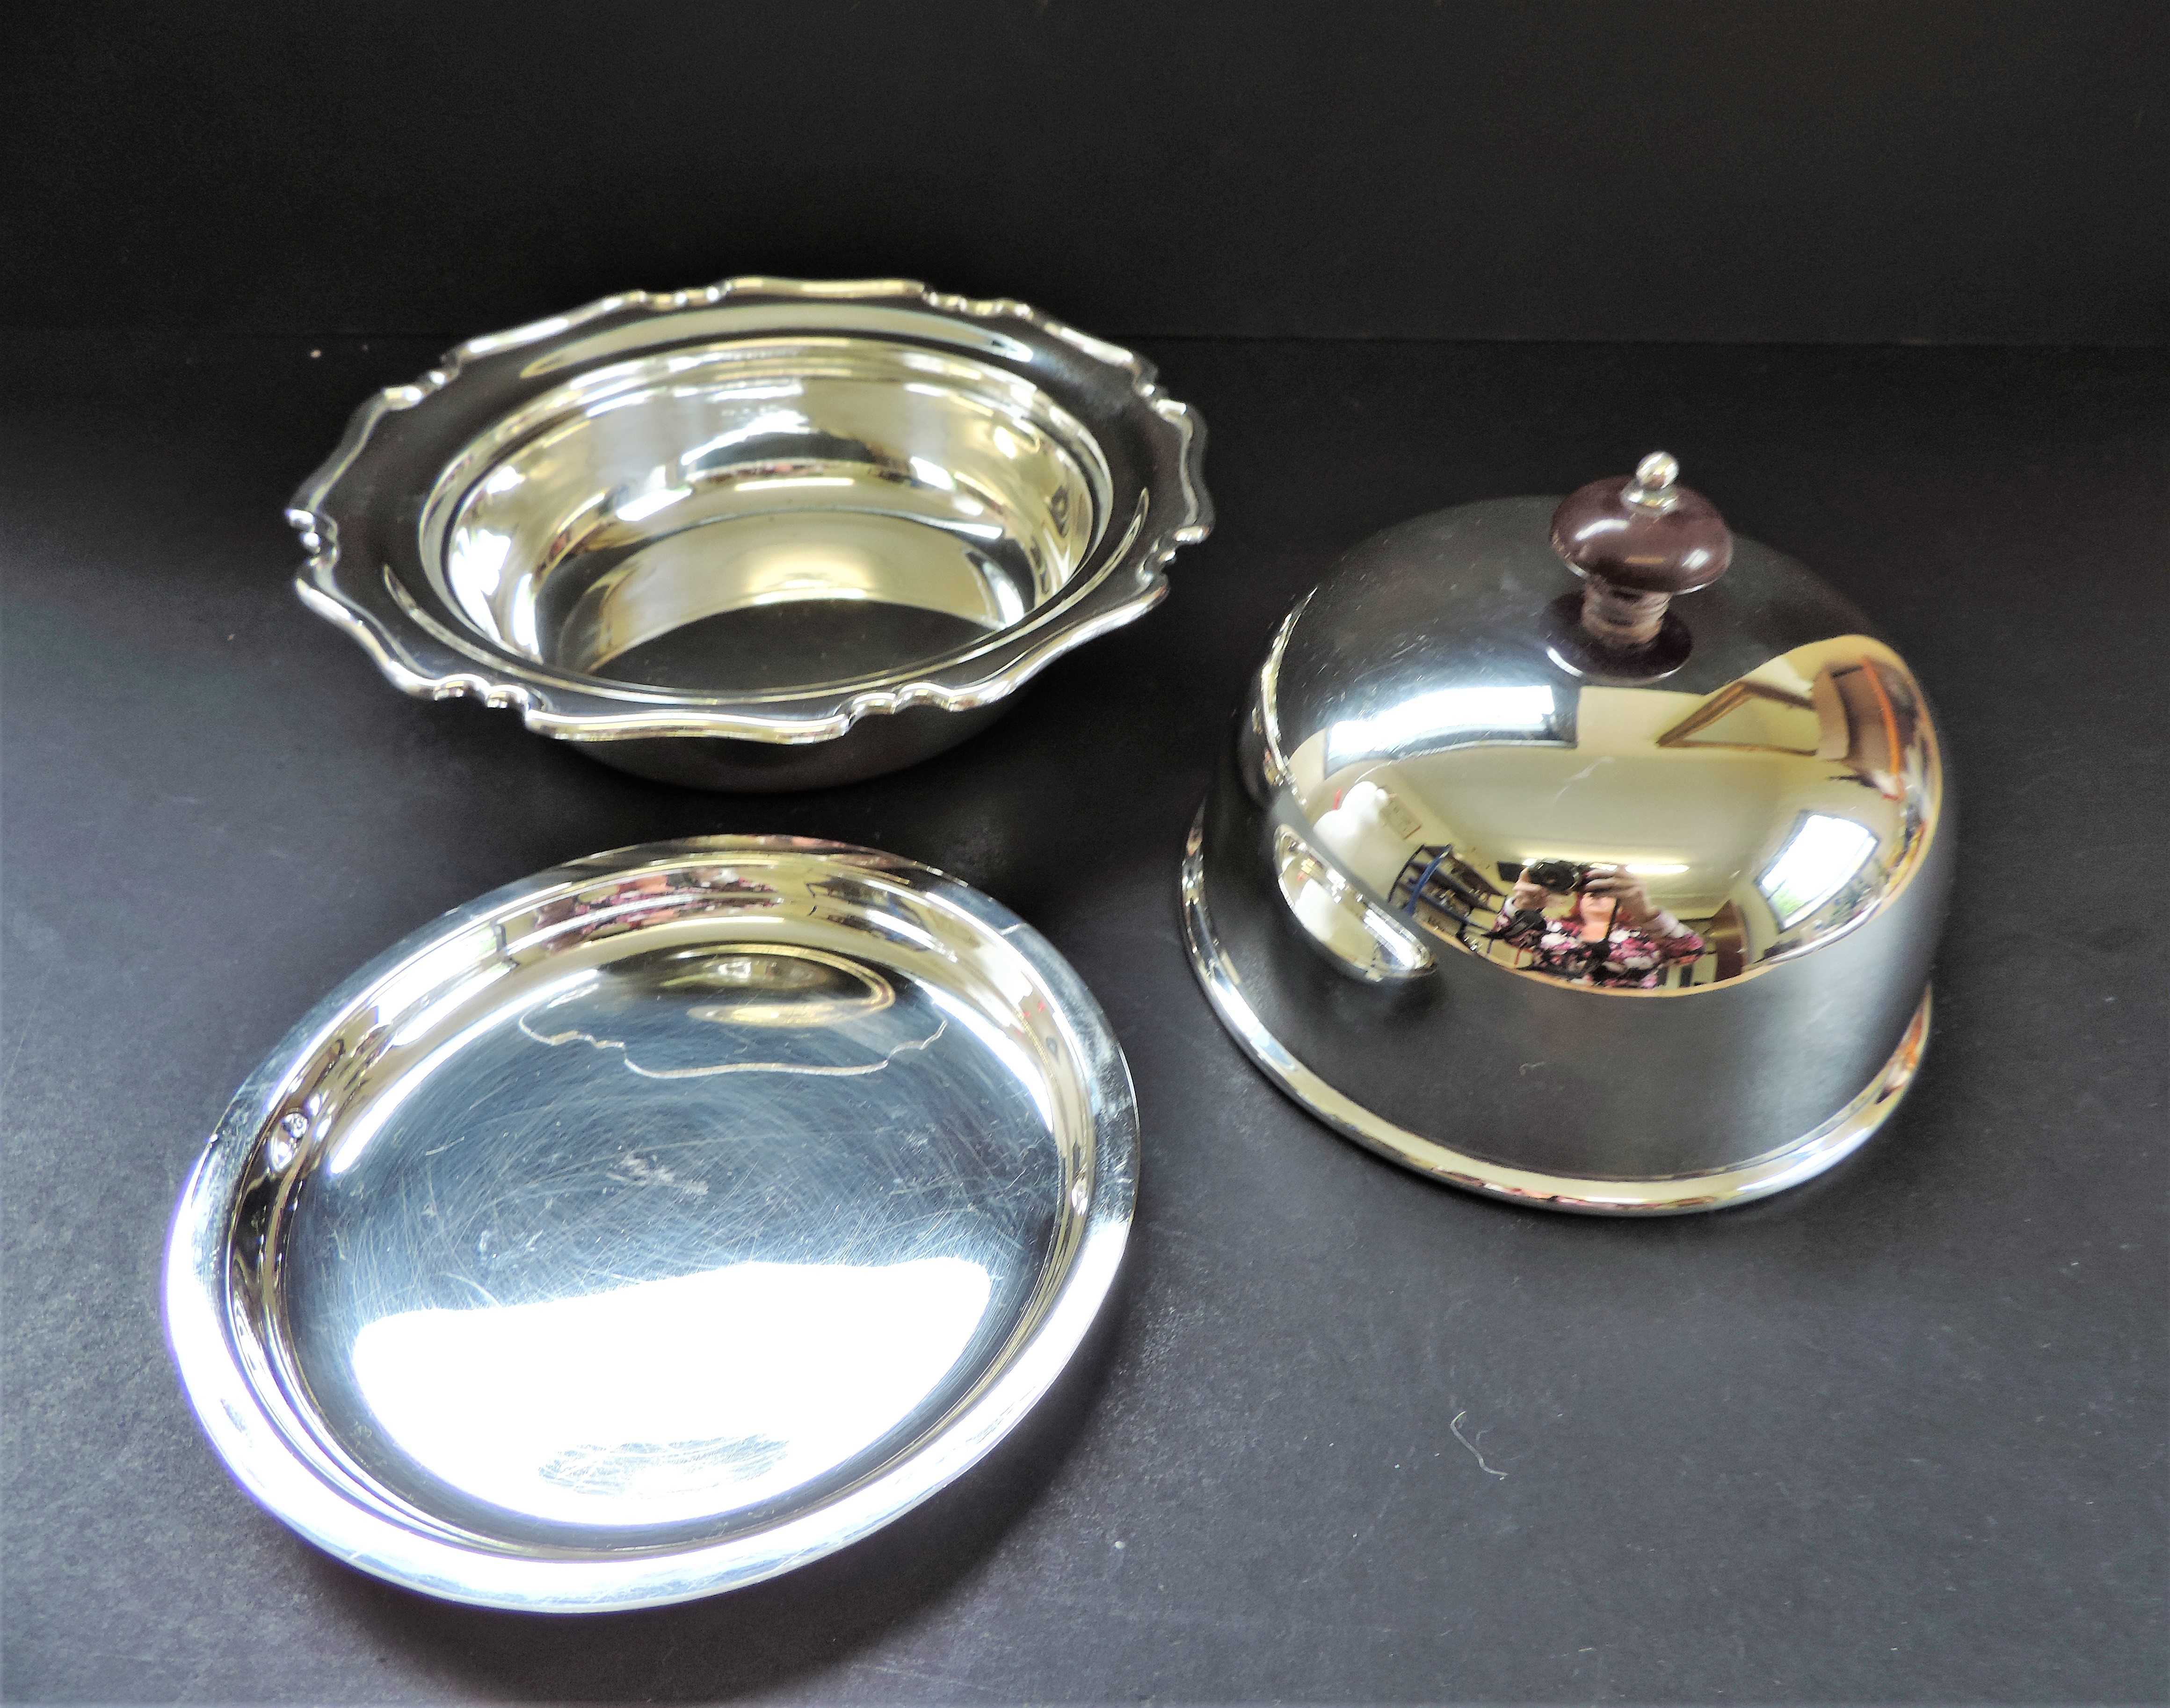 Antique Art Nouveau Silver Plated Muffin Dish/Warmer - Image 2 of 7